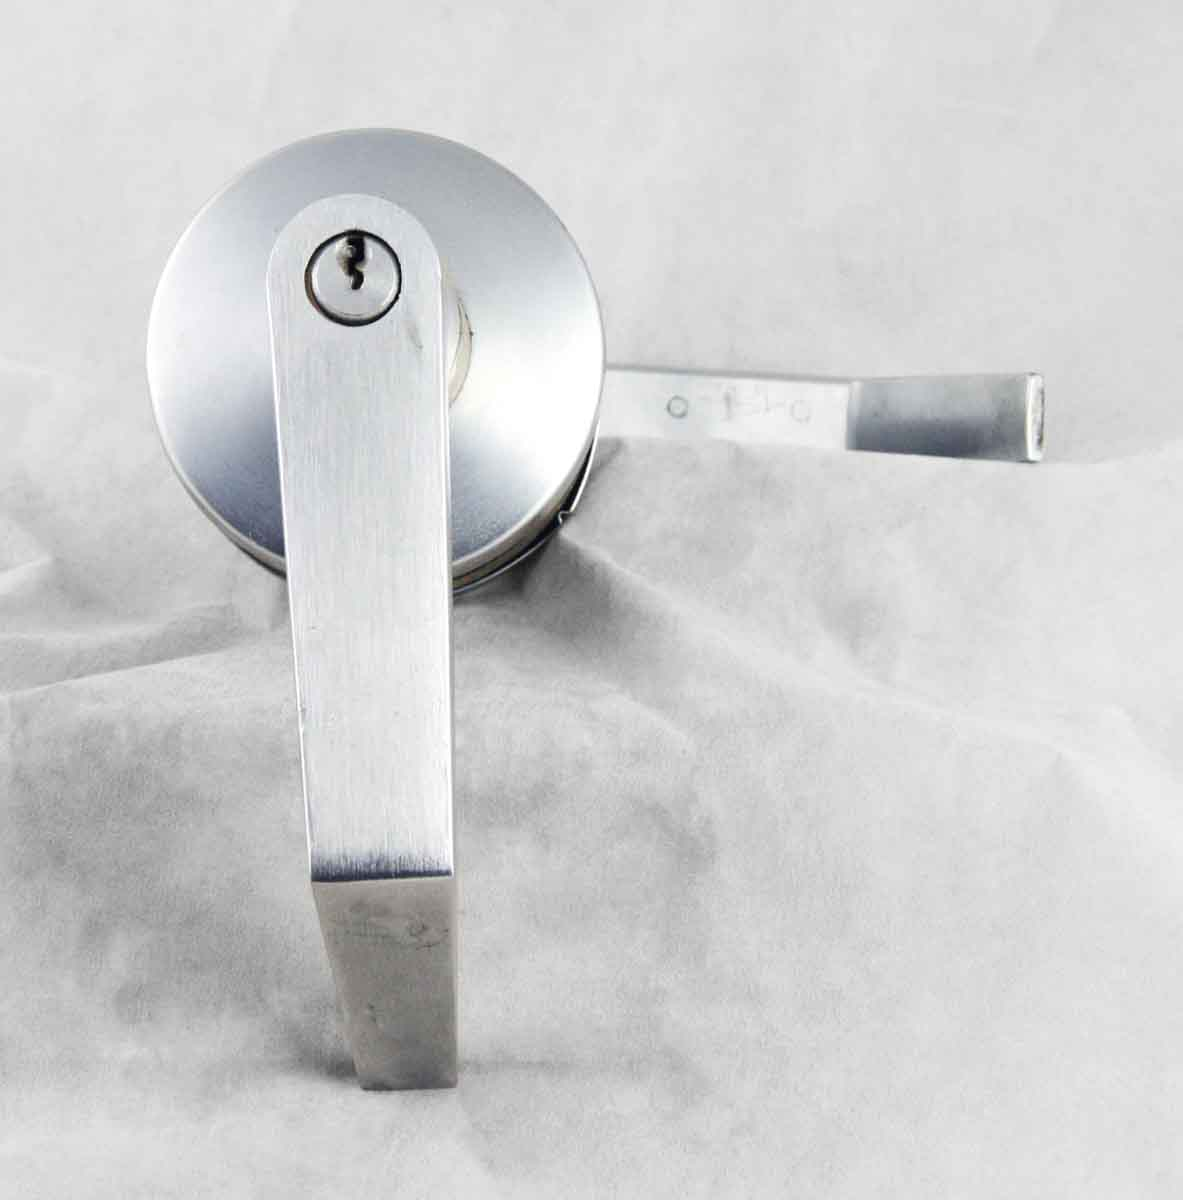 Brushed Steel Lever with Lock